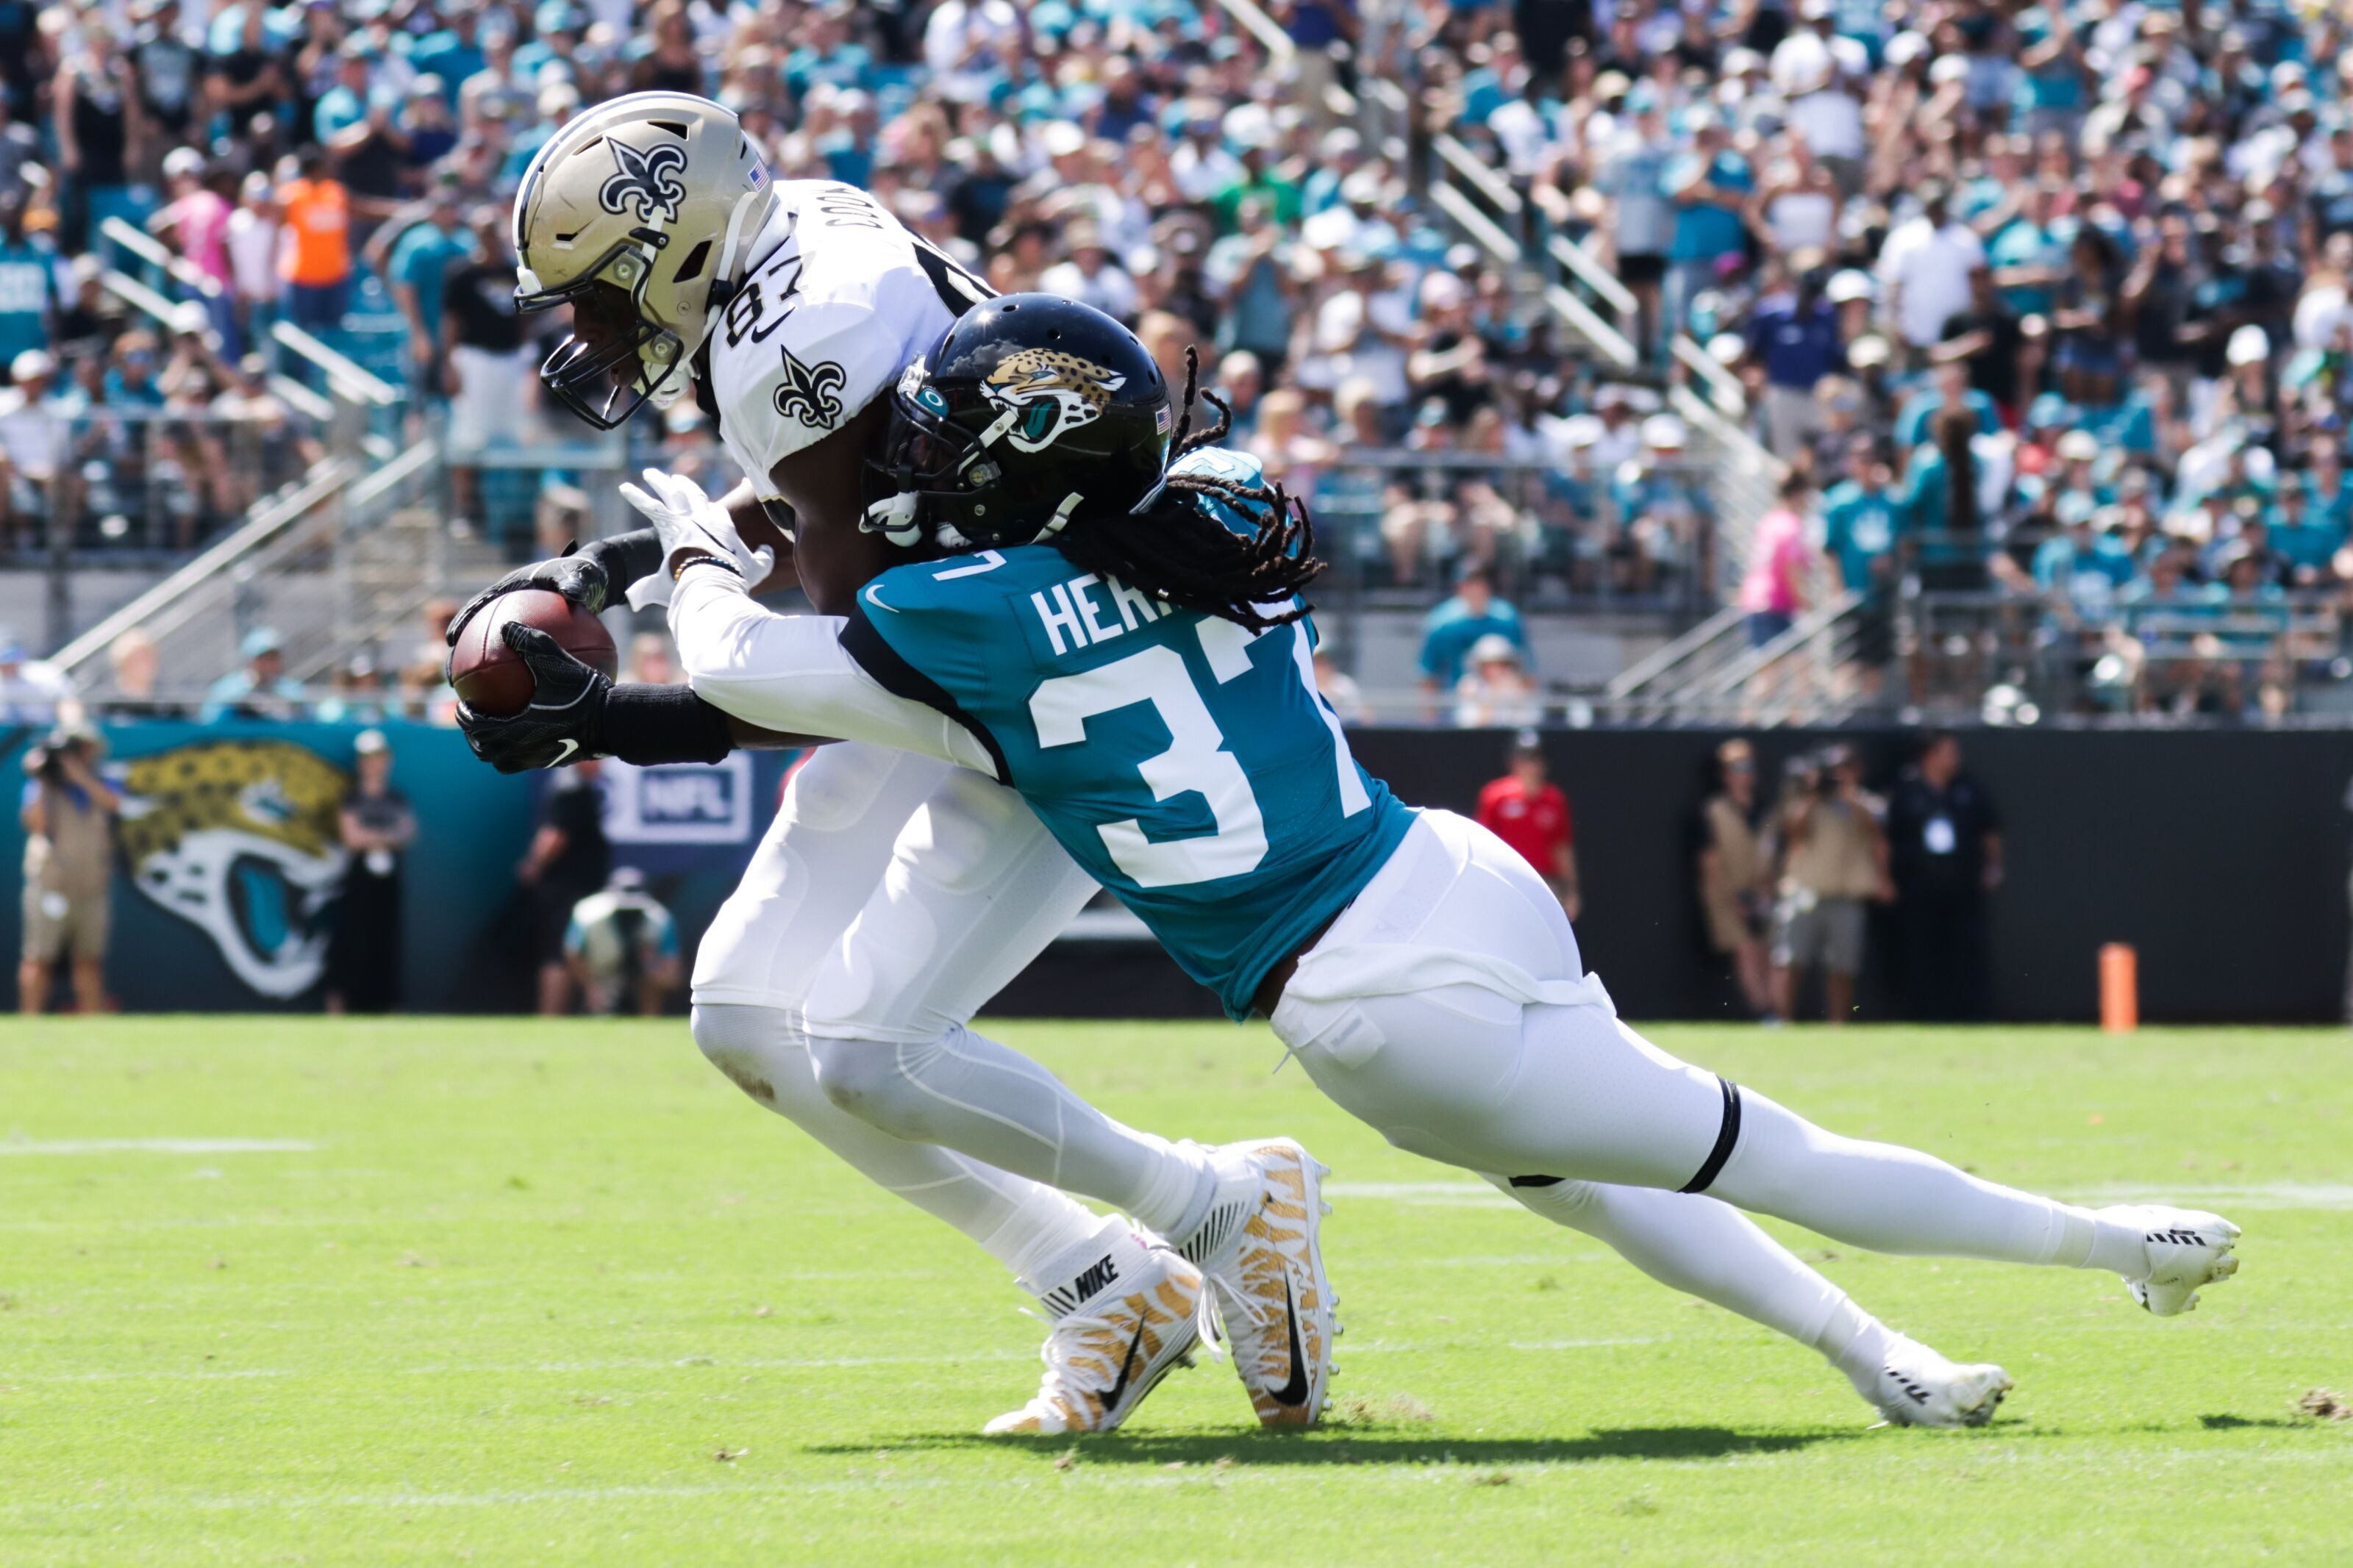 Jaguars defense moves forward against the Bengals